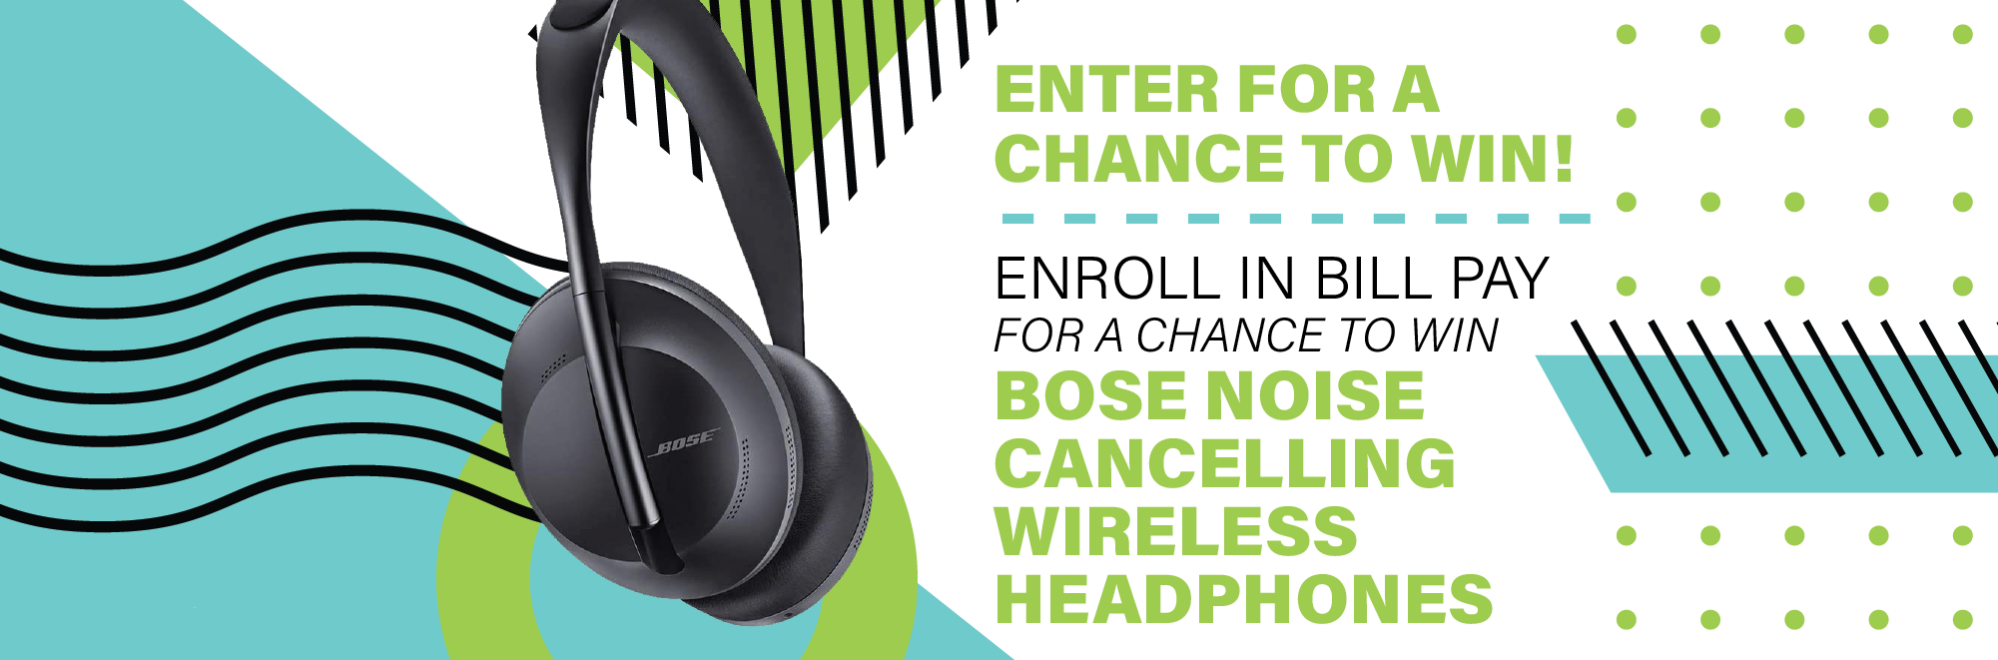 Enter for a chance to win Bose Noise Canceling Headphones by using Bill Pay